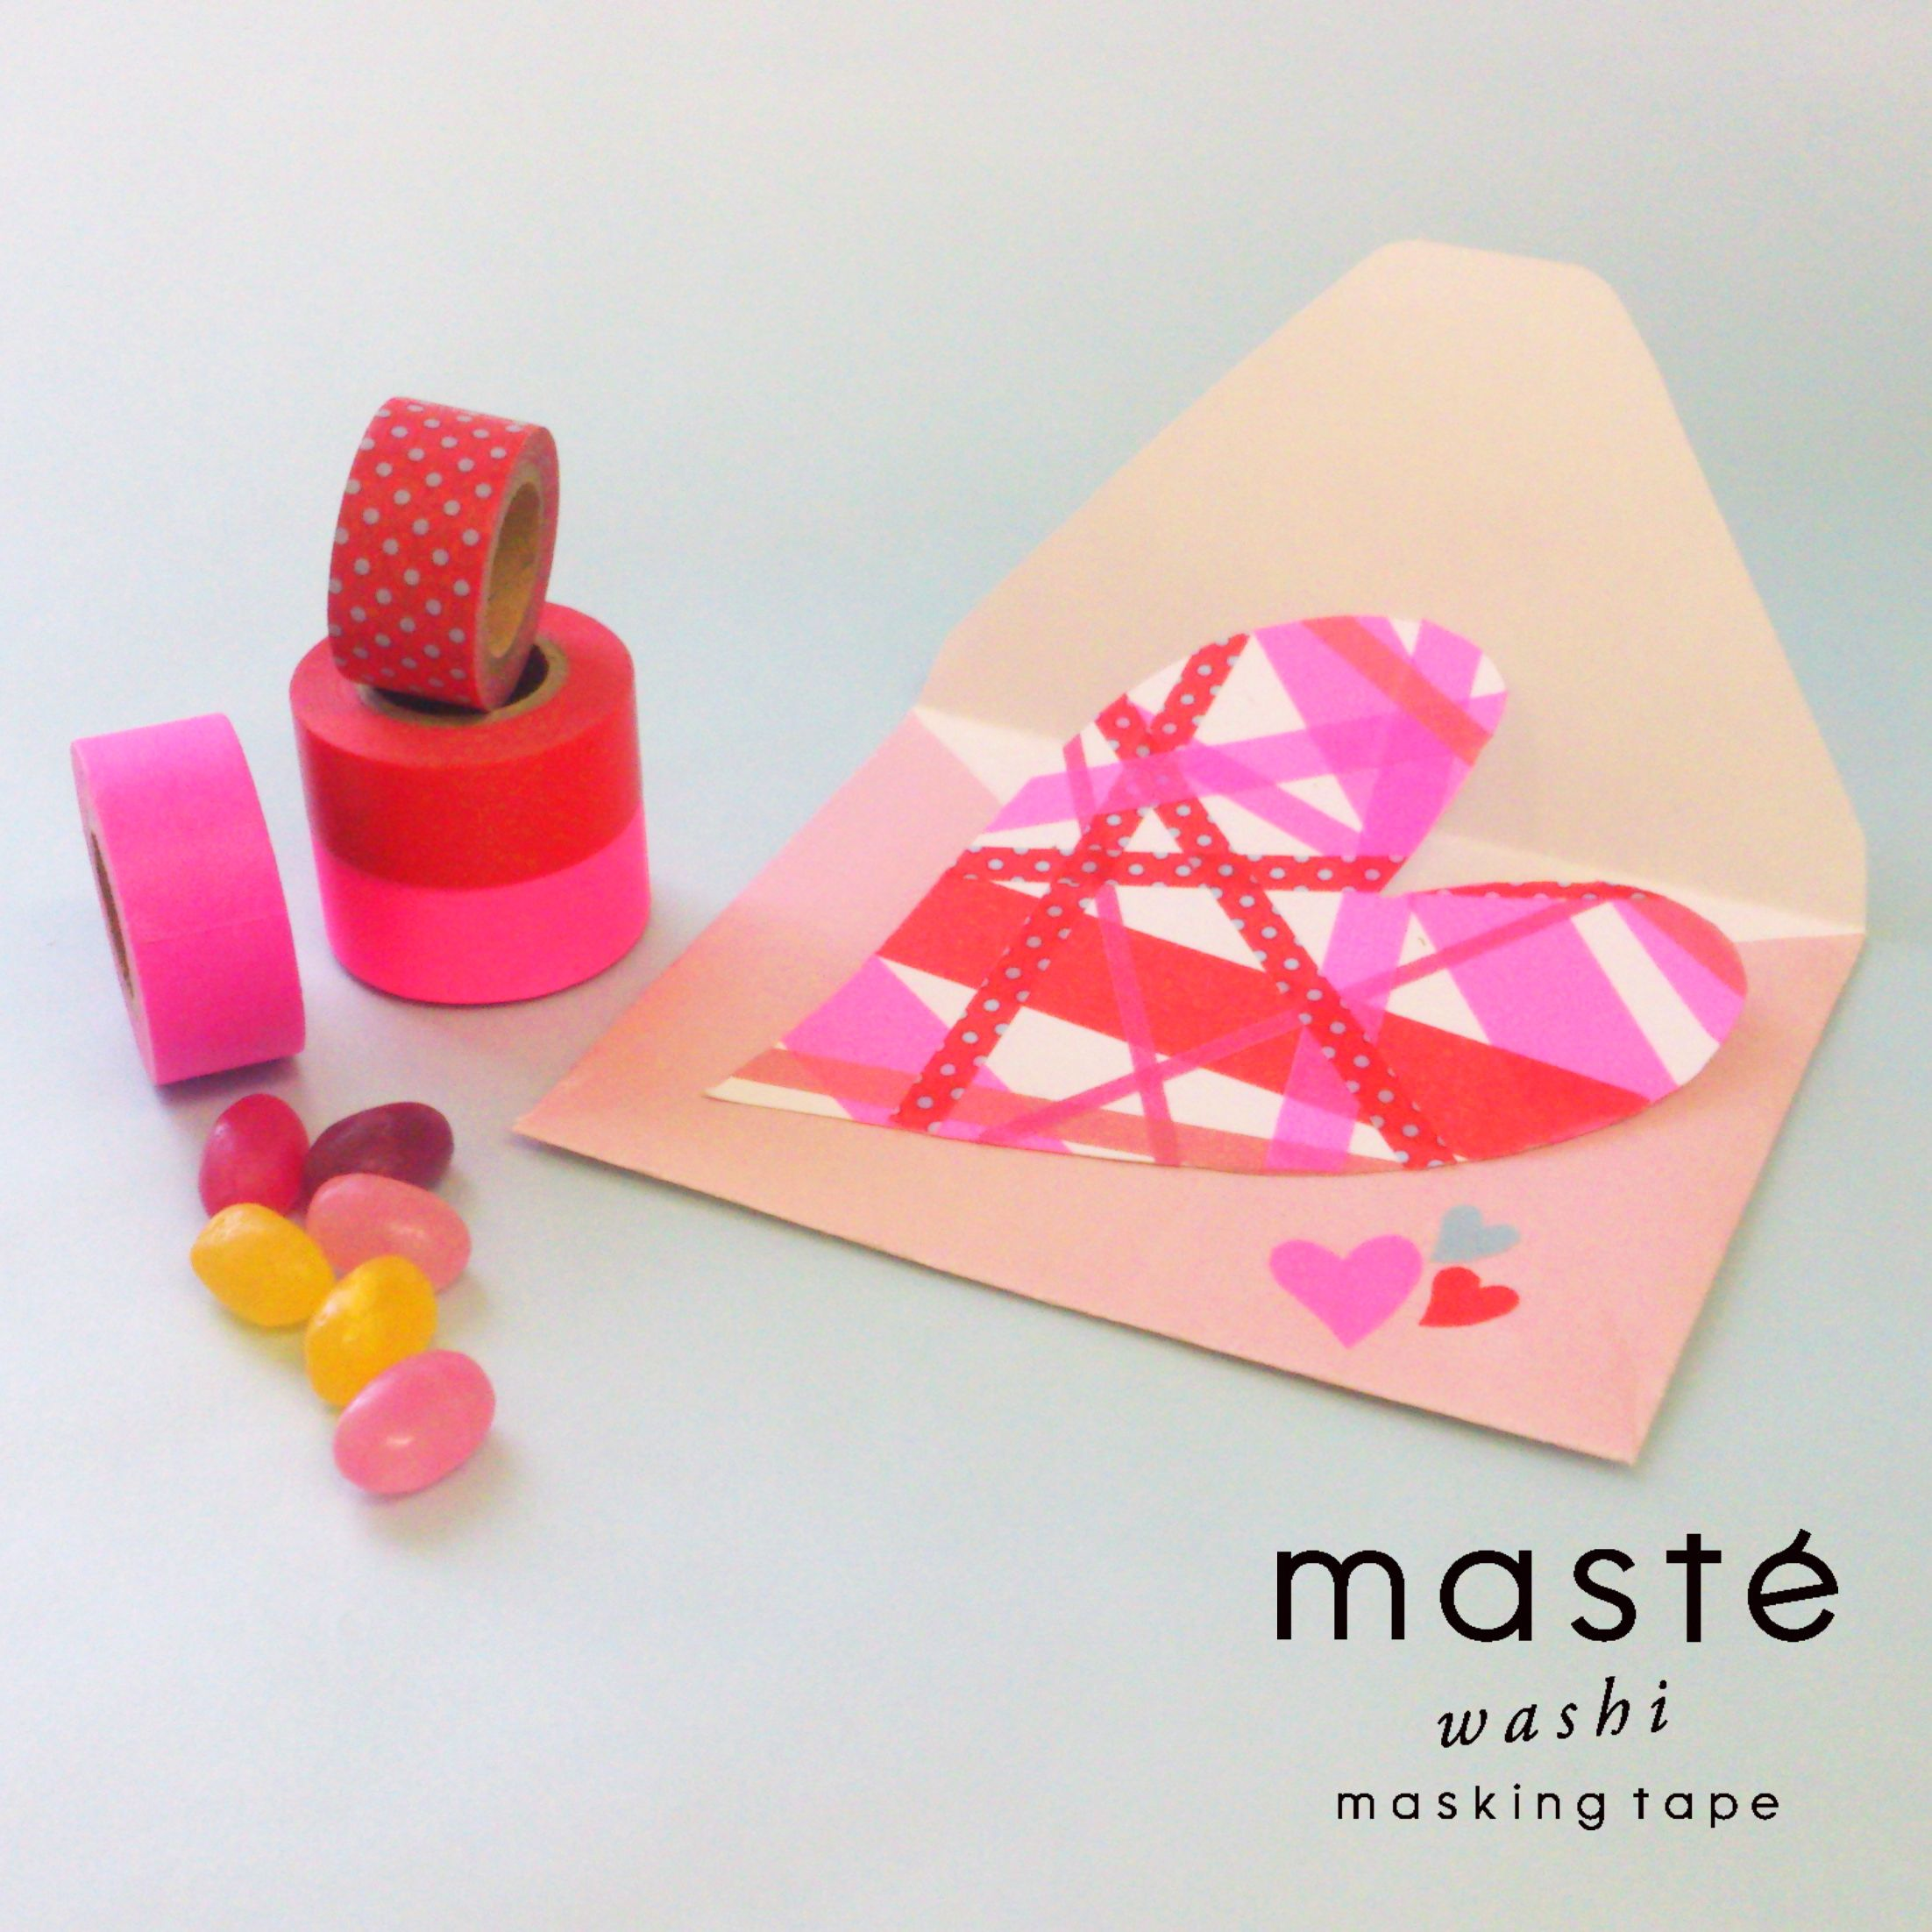 Make a easy heart gripping Valentine card with masking tapes! masté is a colorful and vivid, creative masking tape brand by MARK'S Tokyo Edge